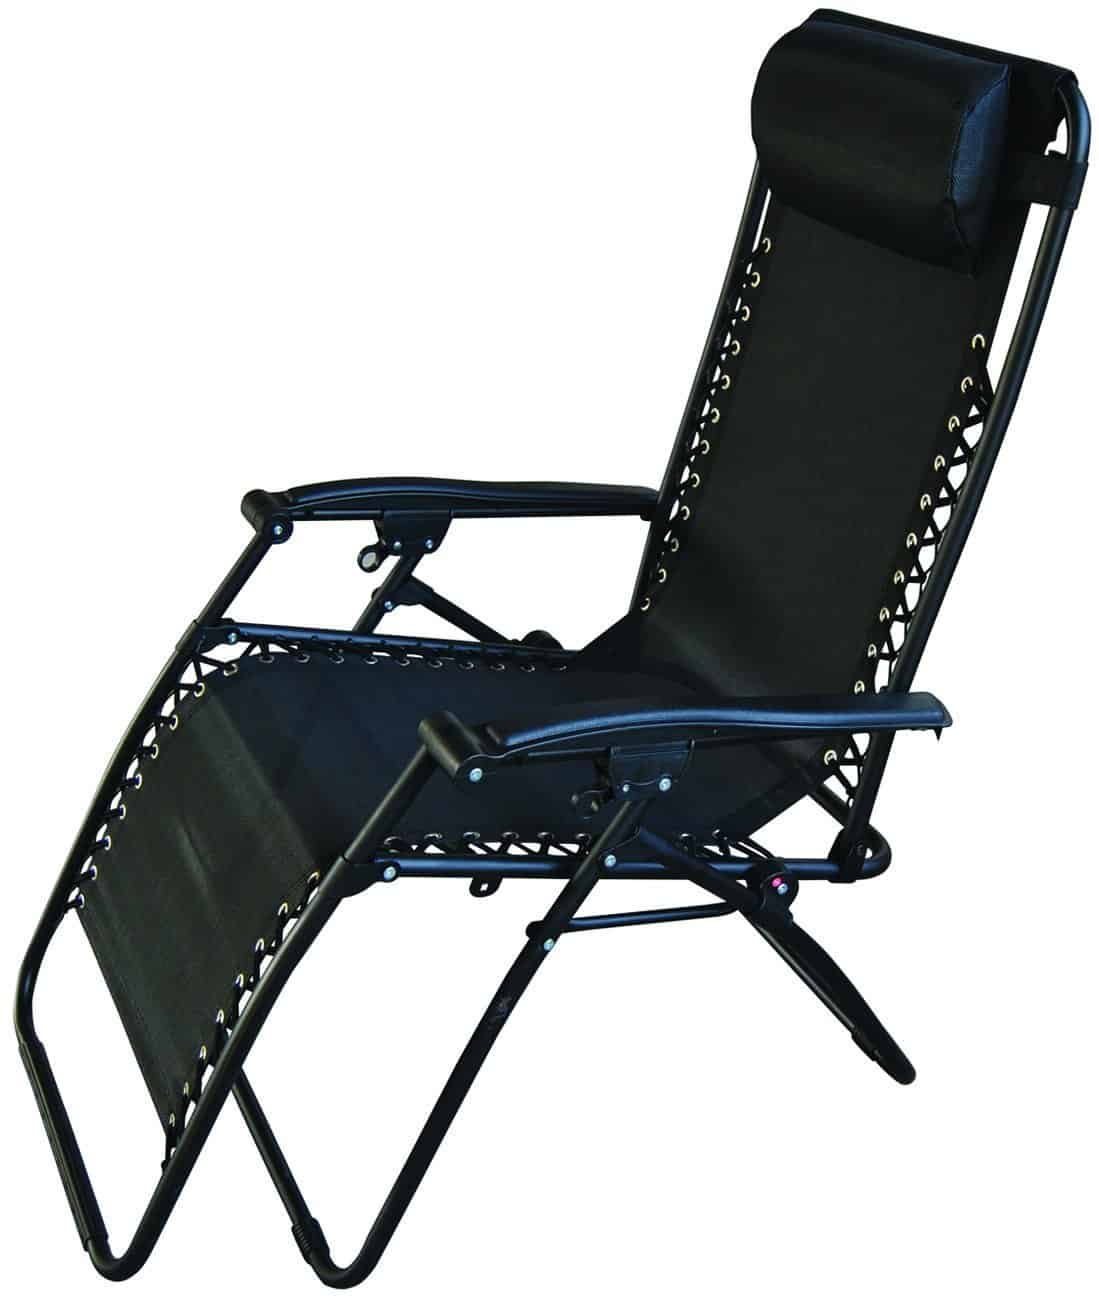 Camping Chair Reviews What are the Best Camping Chairs